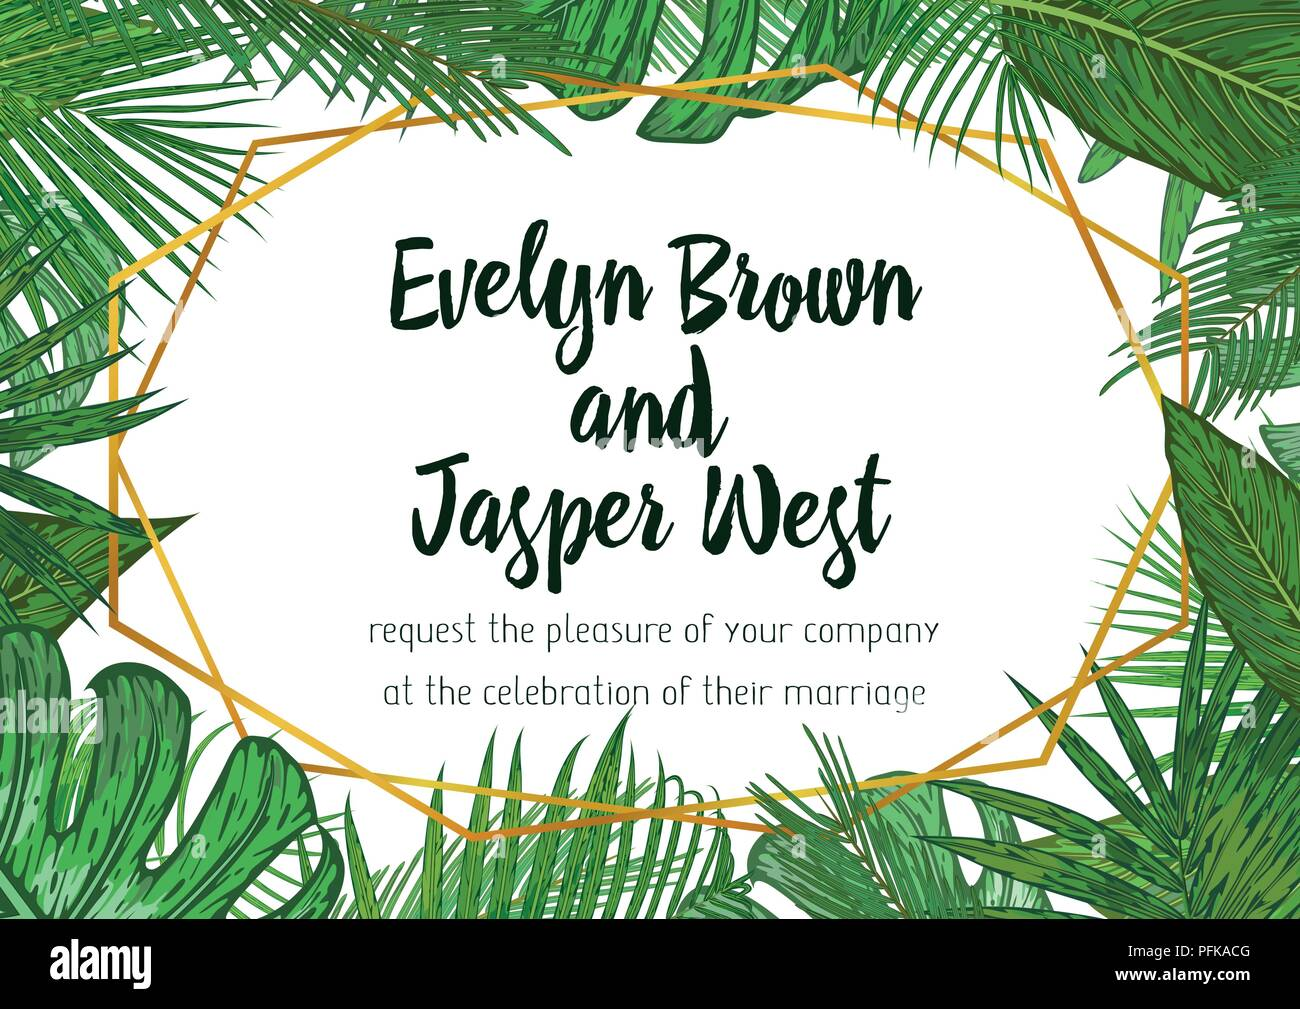 Wedding Invitation Floral Invite Card Design With Green Tropical